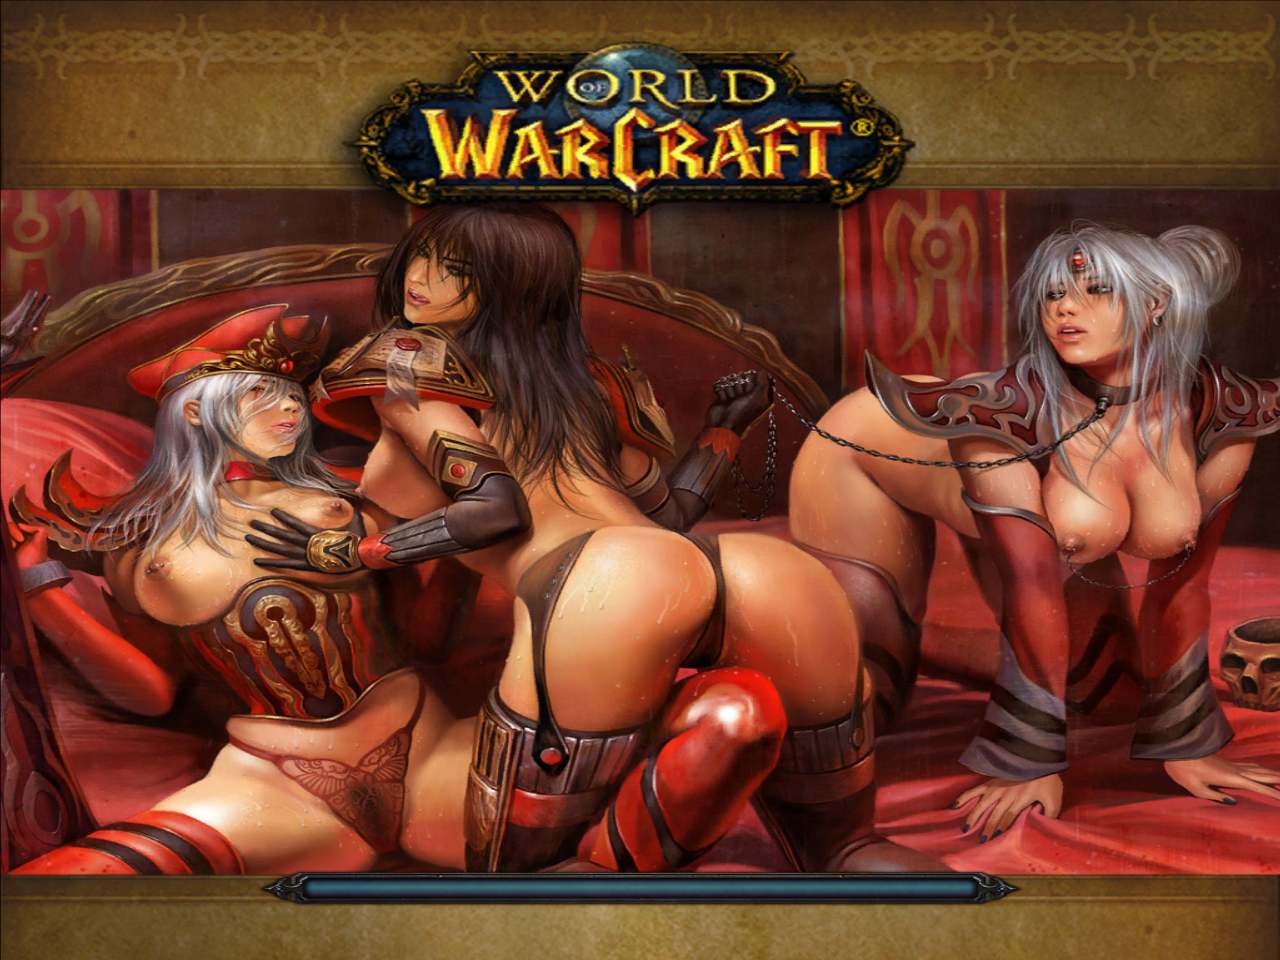 Download porn sexy maps warcraft 3 porncraft image